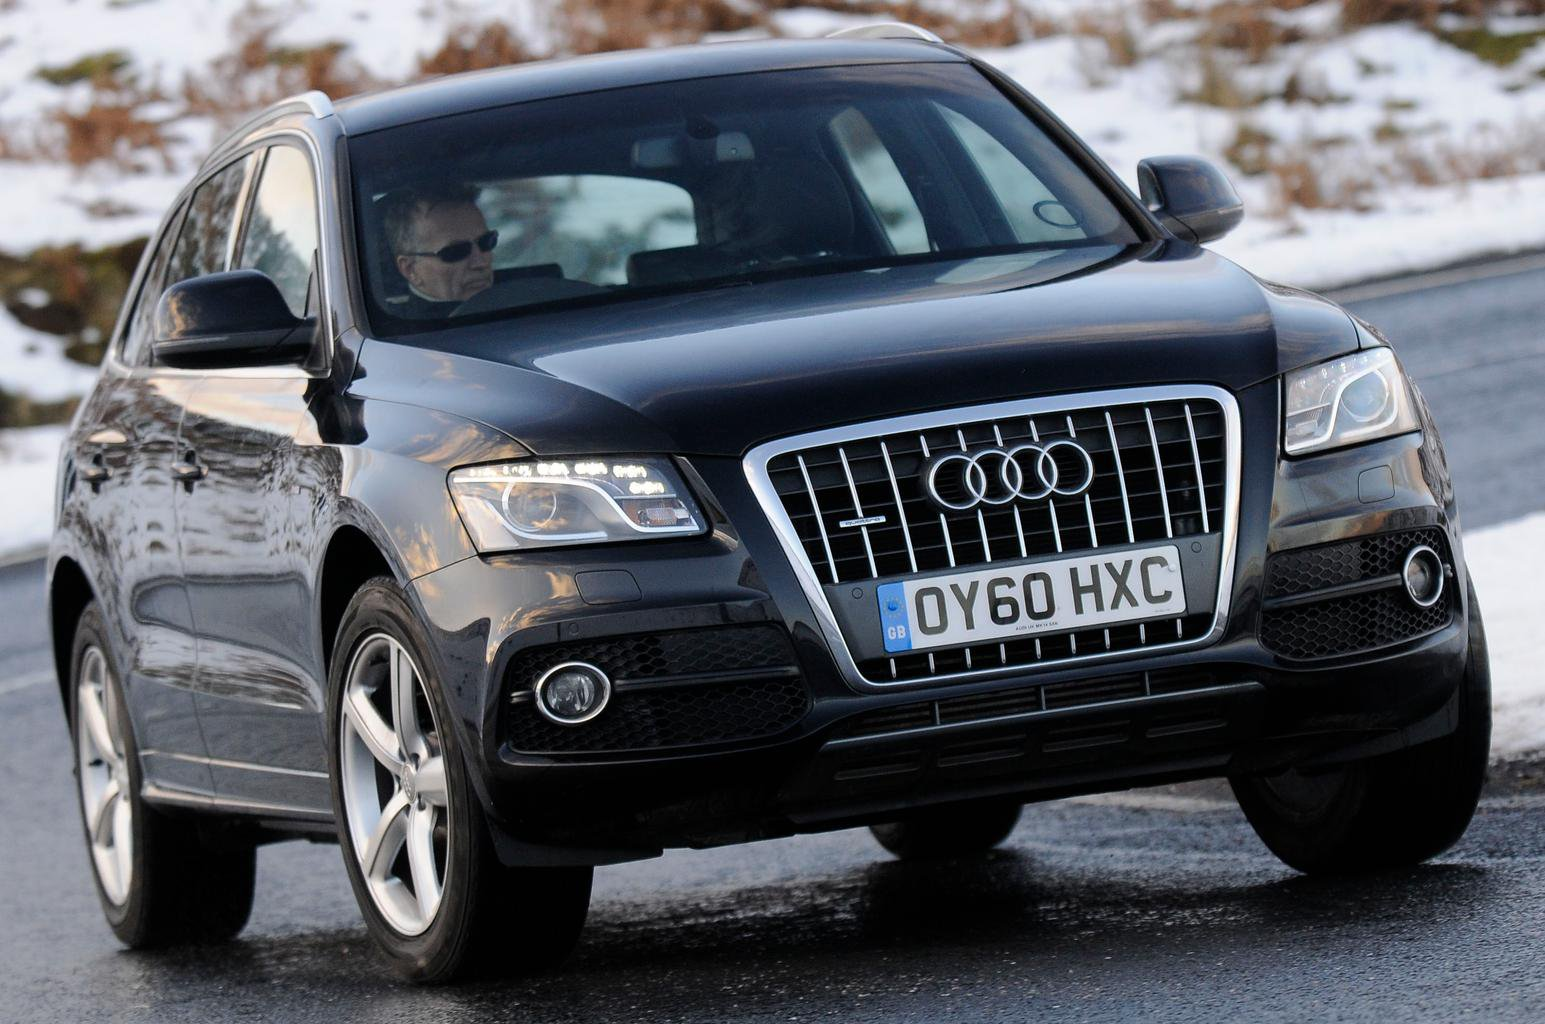 Used Audi Q5 vs BMW X3 vs Land Rover Freelander vs Volvo XC60